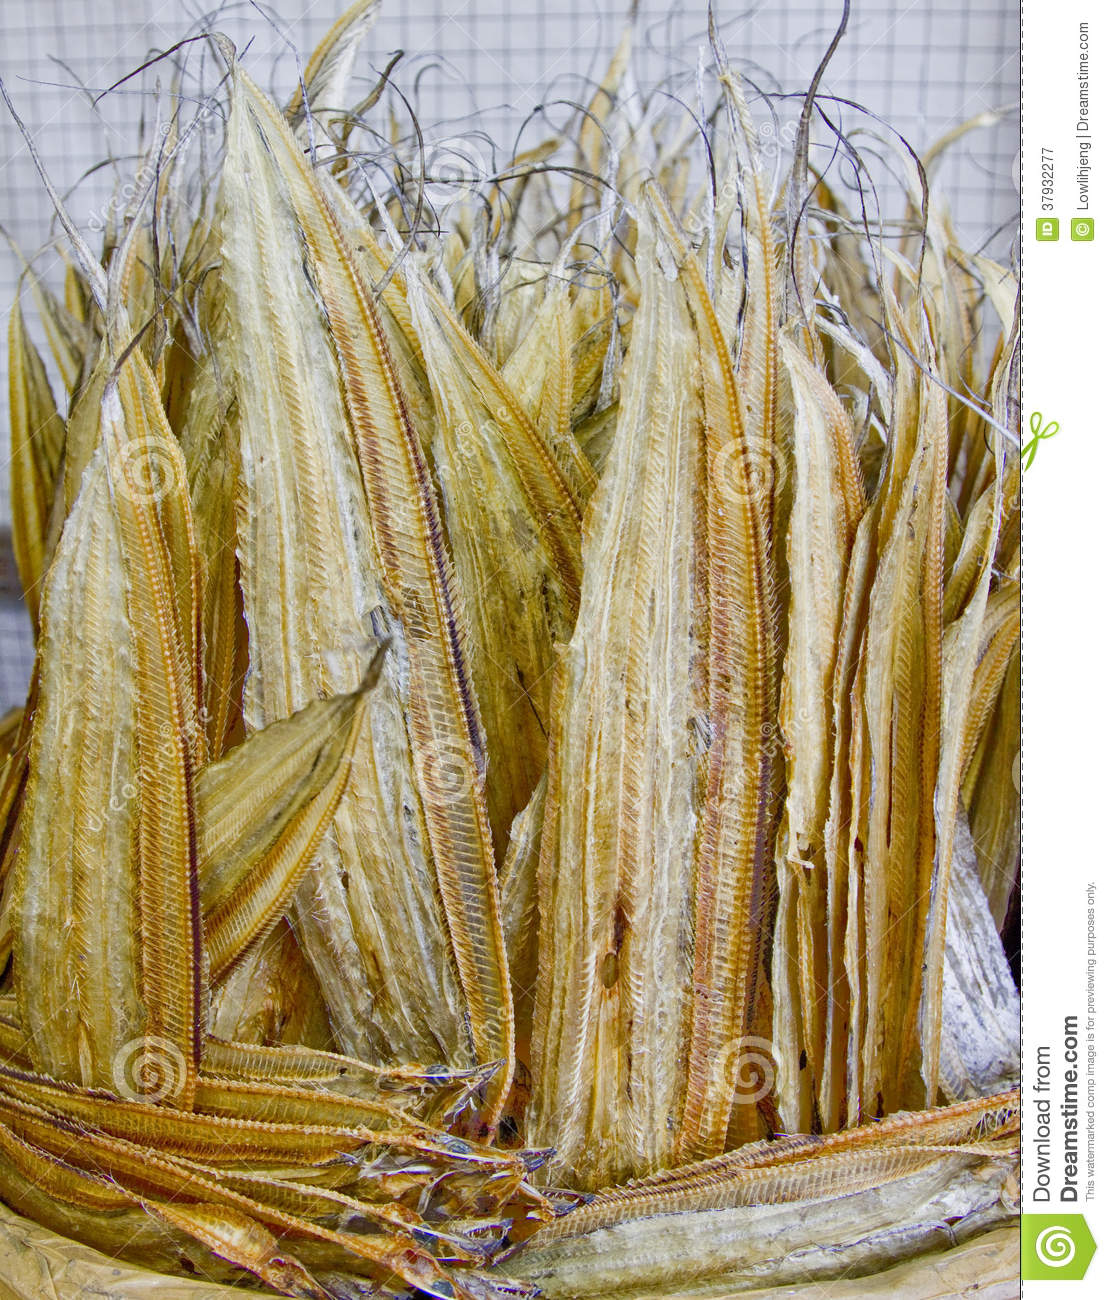 Dried fish stock image image of pile marine natural for Dried fish philippines